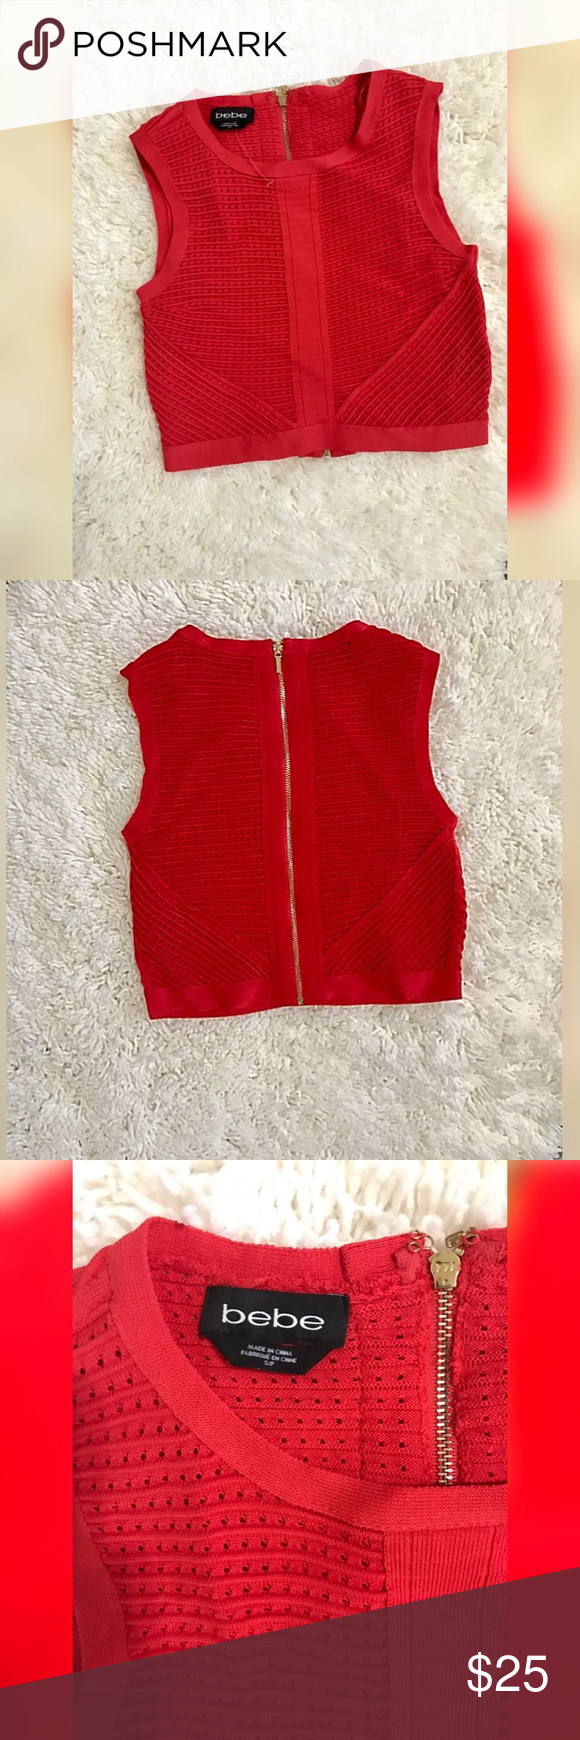 Bebe crop top, brand new! Bebe crop top, thick quality fabric, form fitting. Size Small. Tops Crop Tops